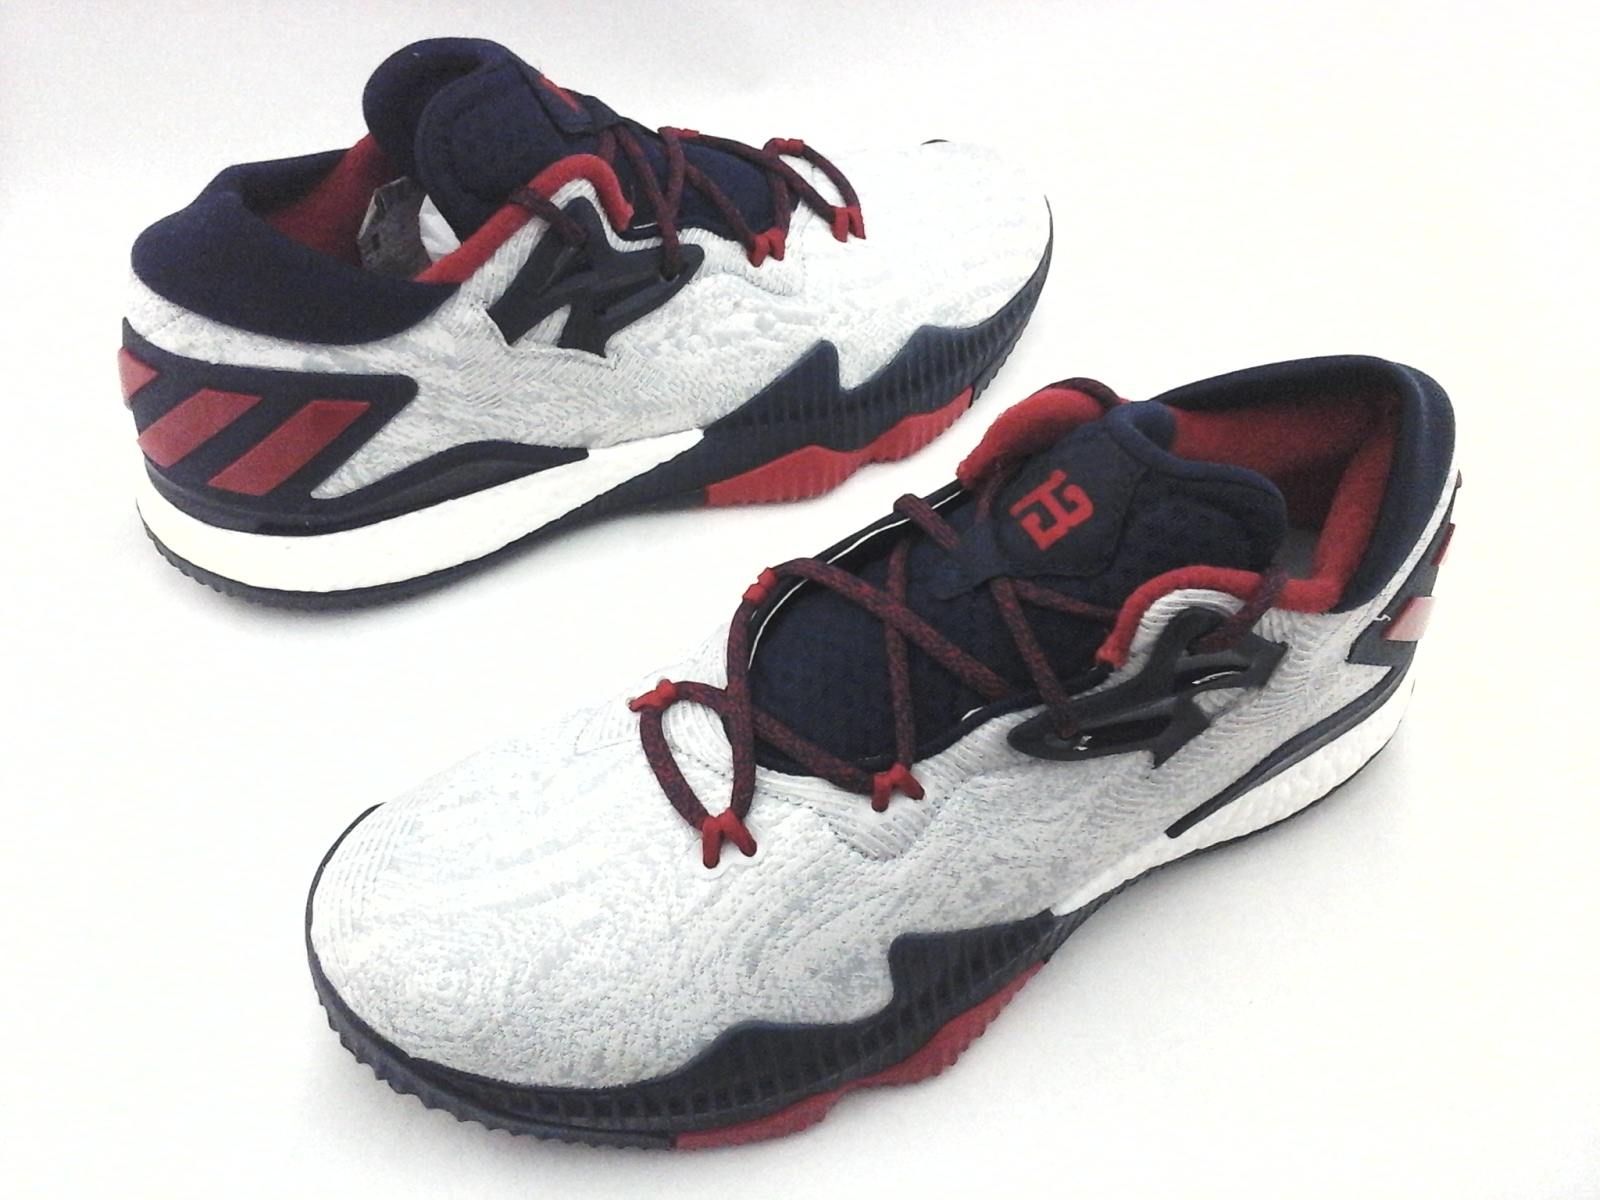 Details about Adidas HARDEN Crazylight Boost Basketball USA Olympic B49755 Shoes US 1246 23